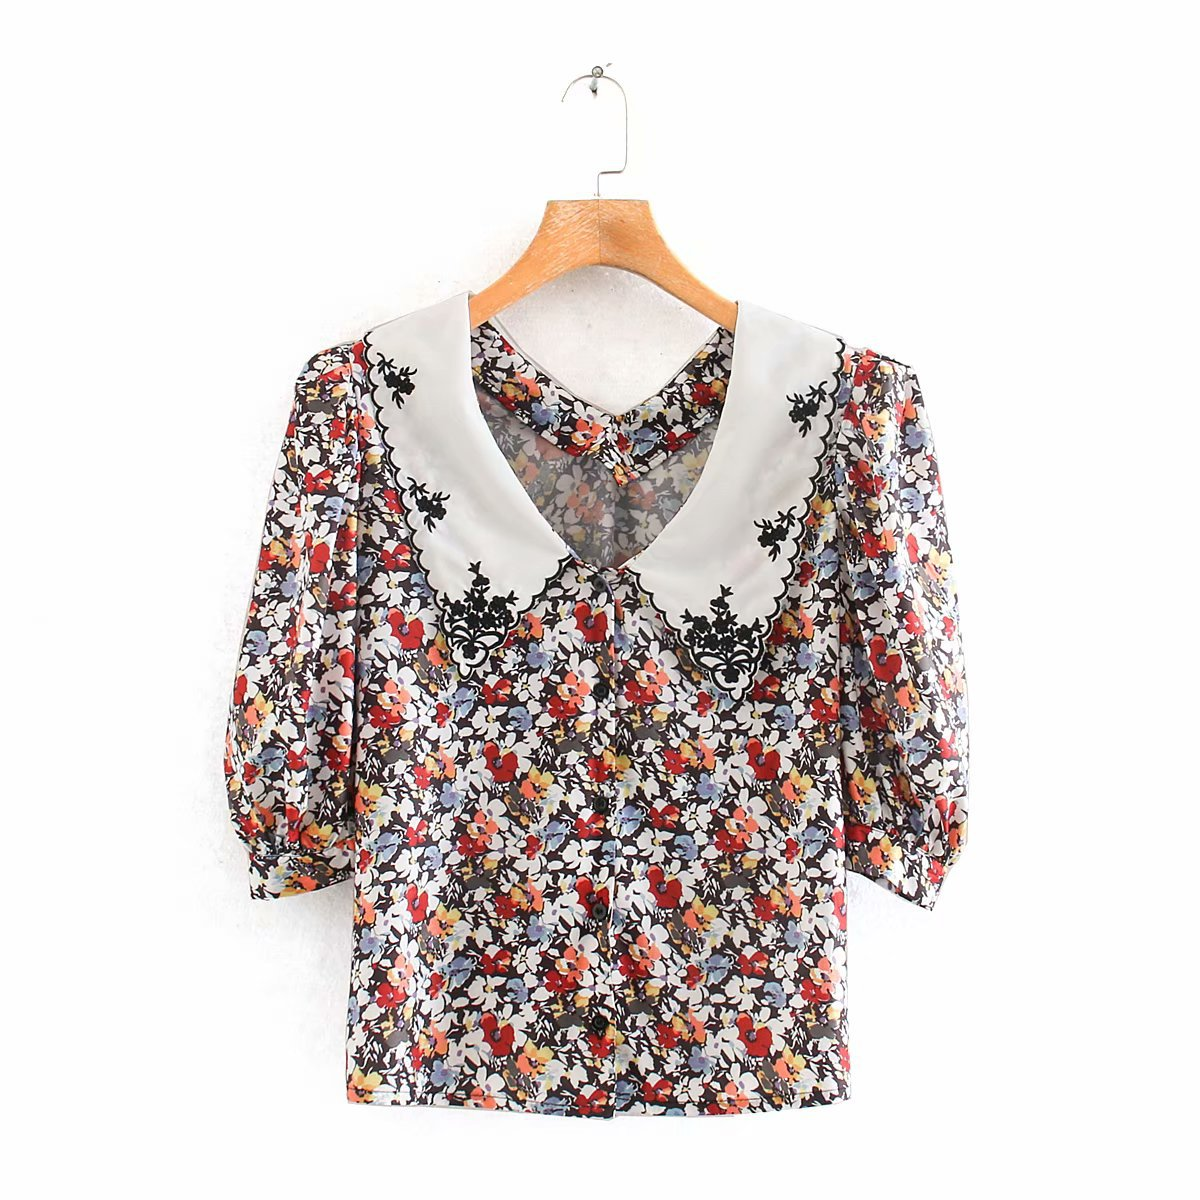 2020 Spring Summer New Floral Flower Print Zaraing Women Blouse Shirt Sheining Vadiming Female Blouse Shirt Sexy Wdd87205